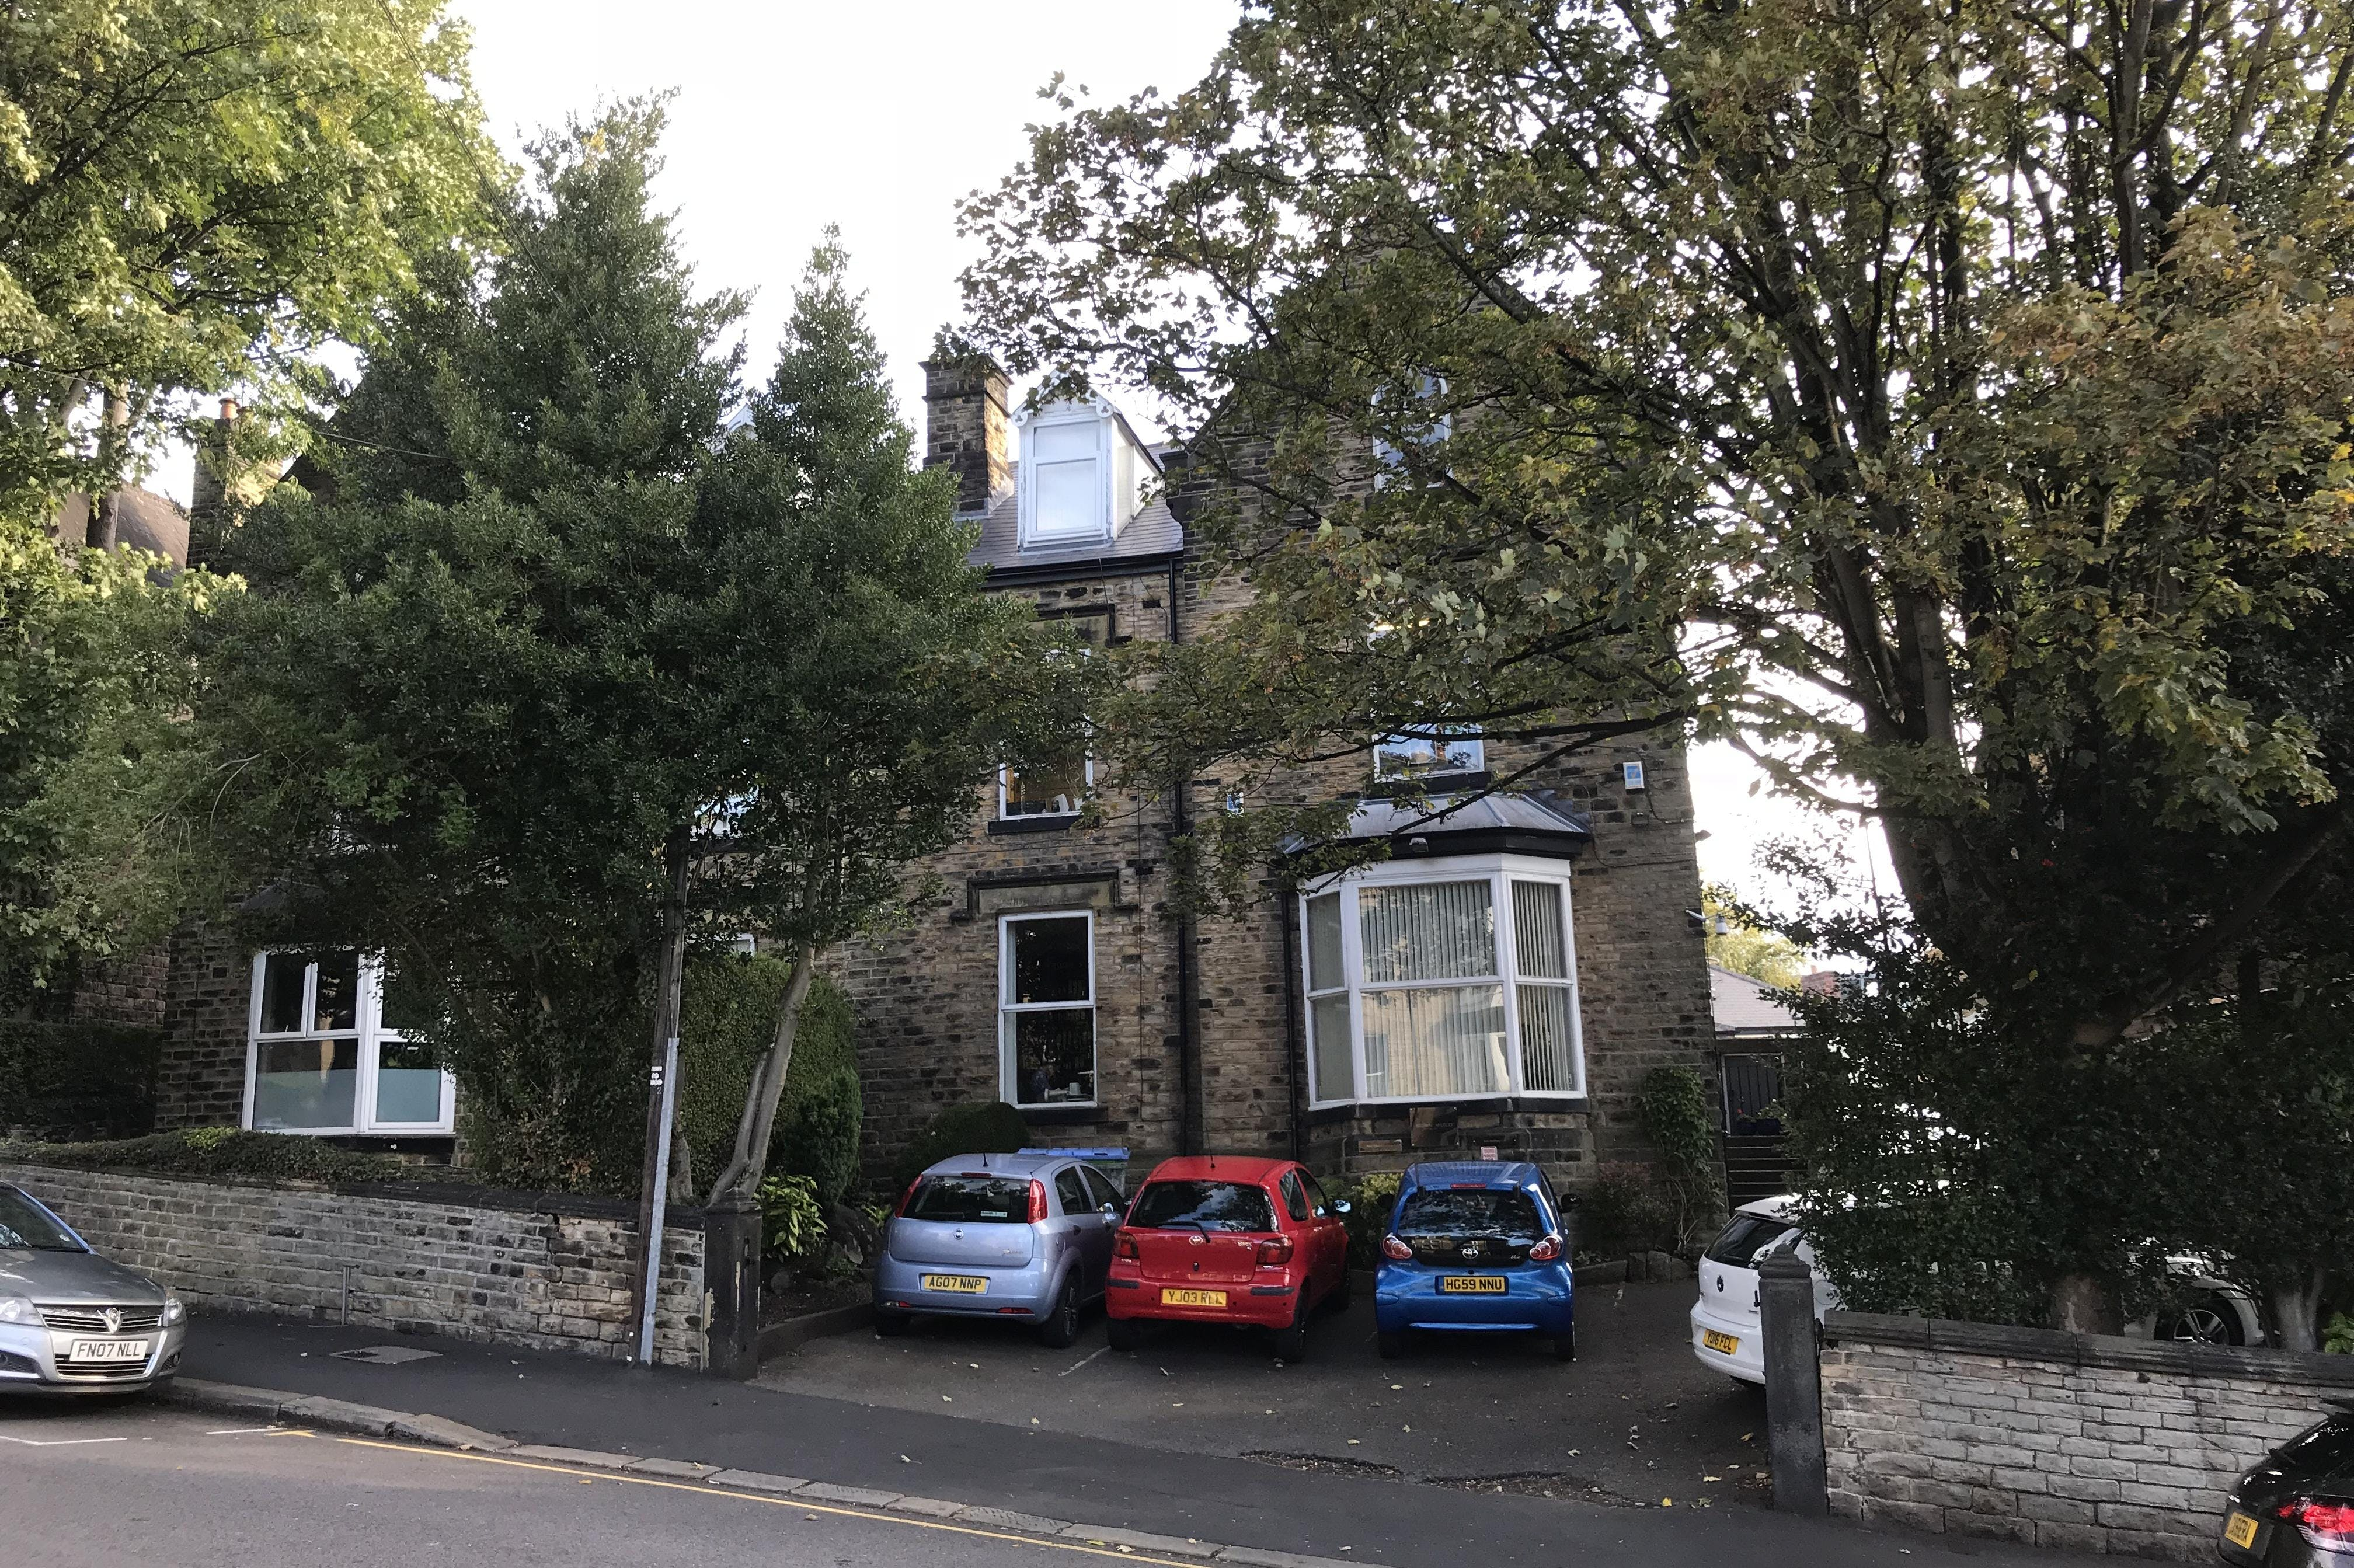 51 Clarkegrove, Sheffield, Offices To Let / For Sale - IMG_5192.jpg